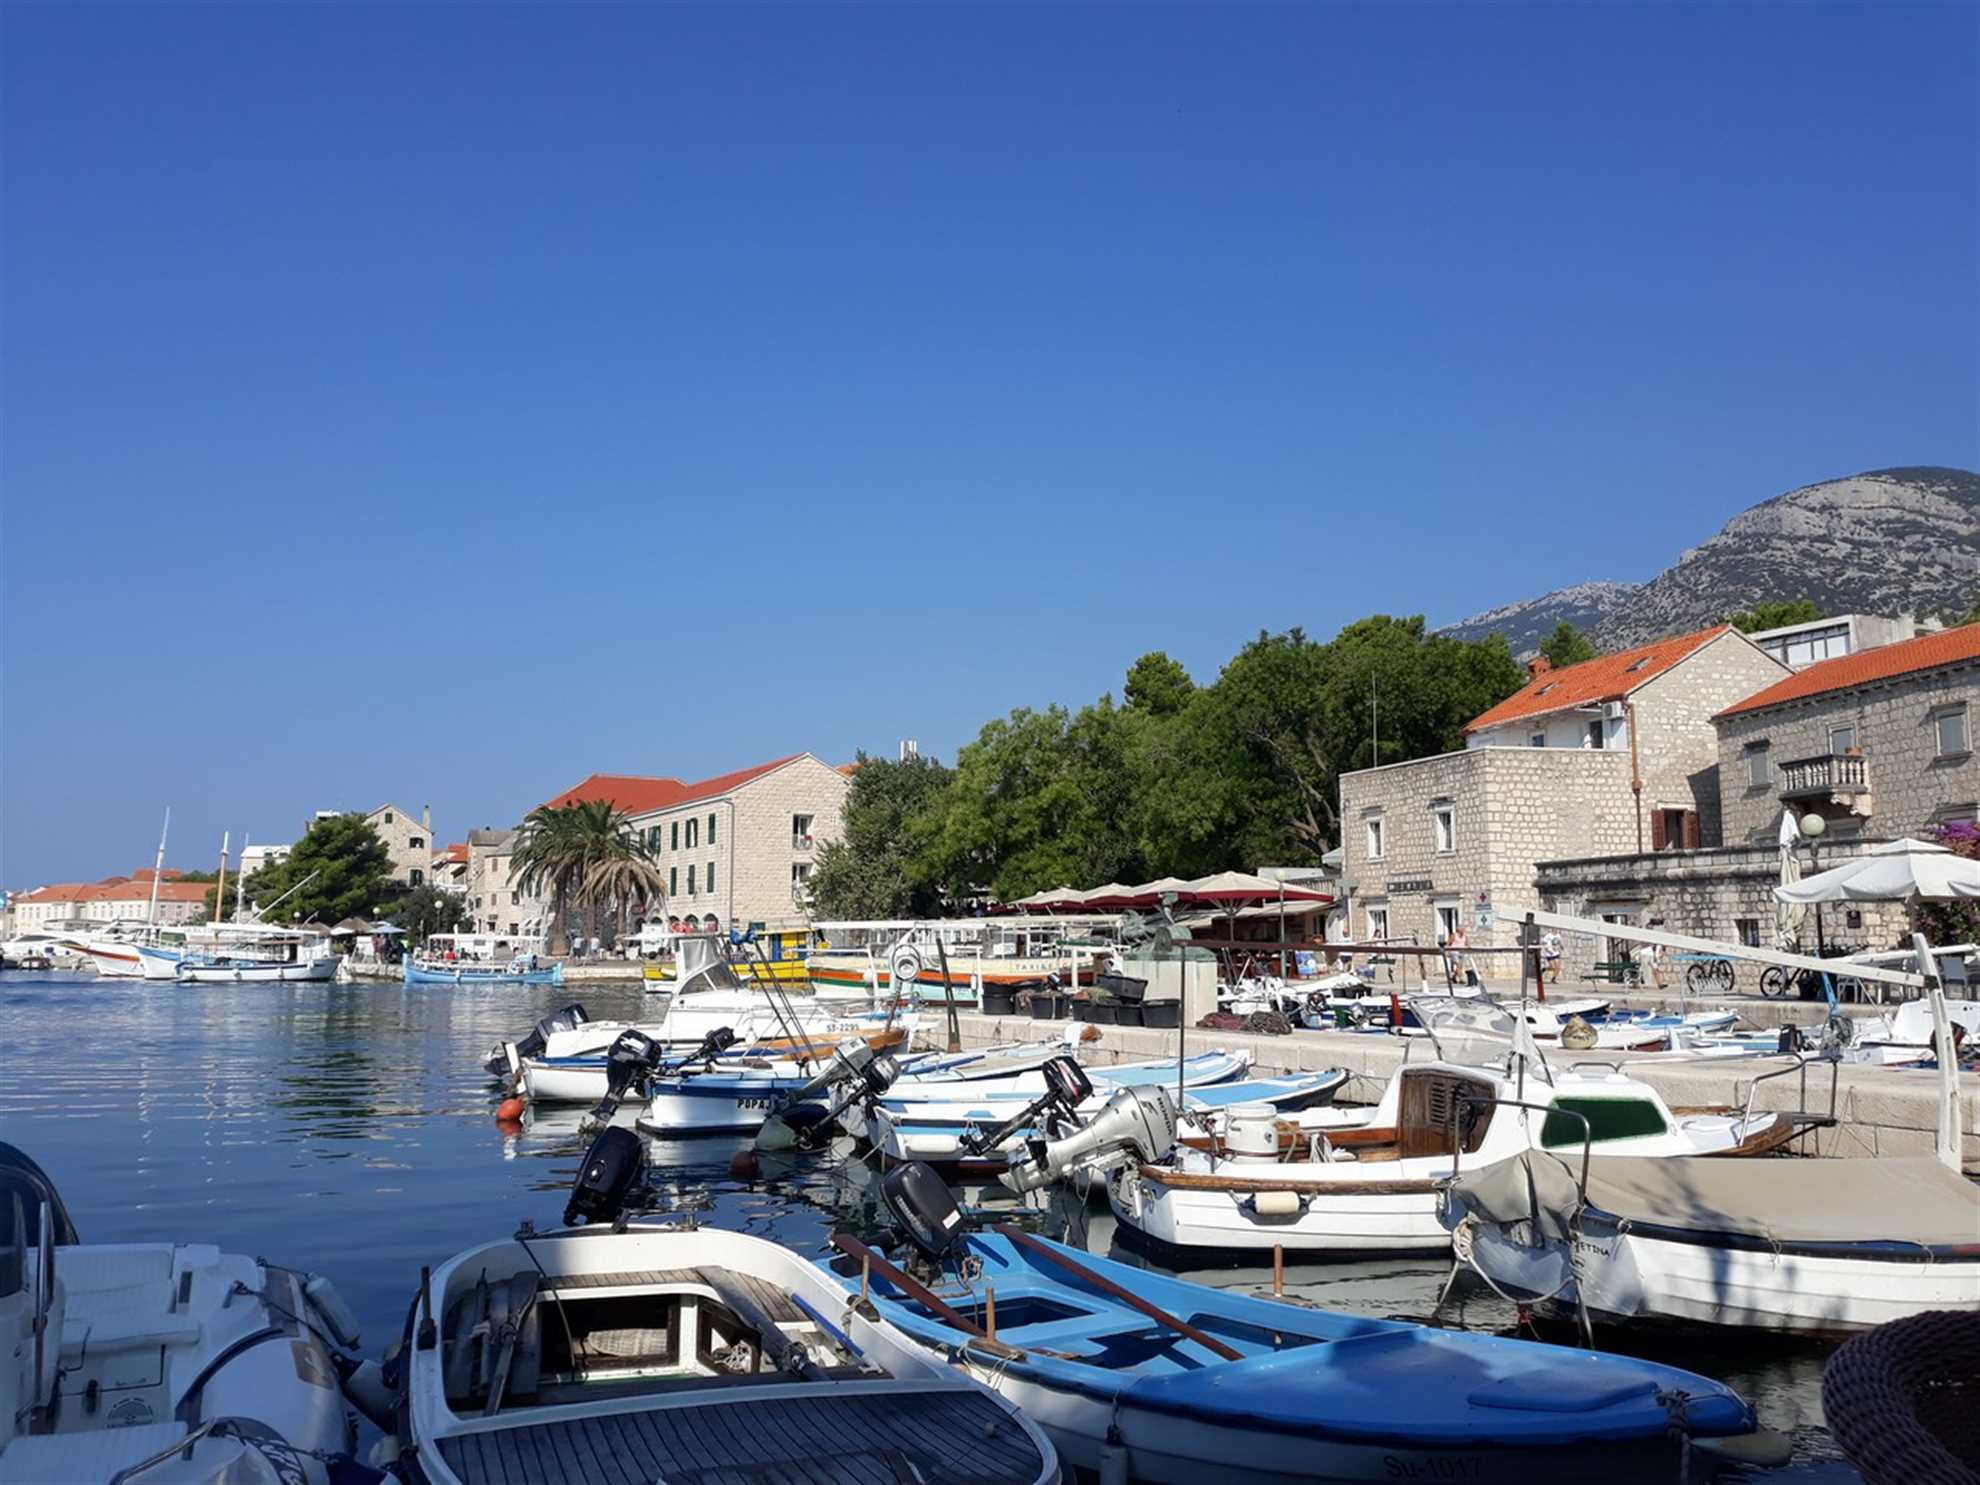 Port for small boats in the town of Bol on Brac island and Promenade